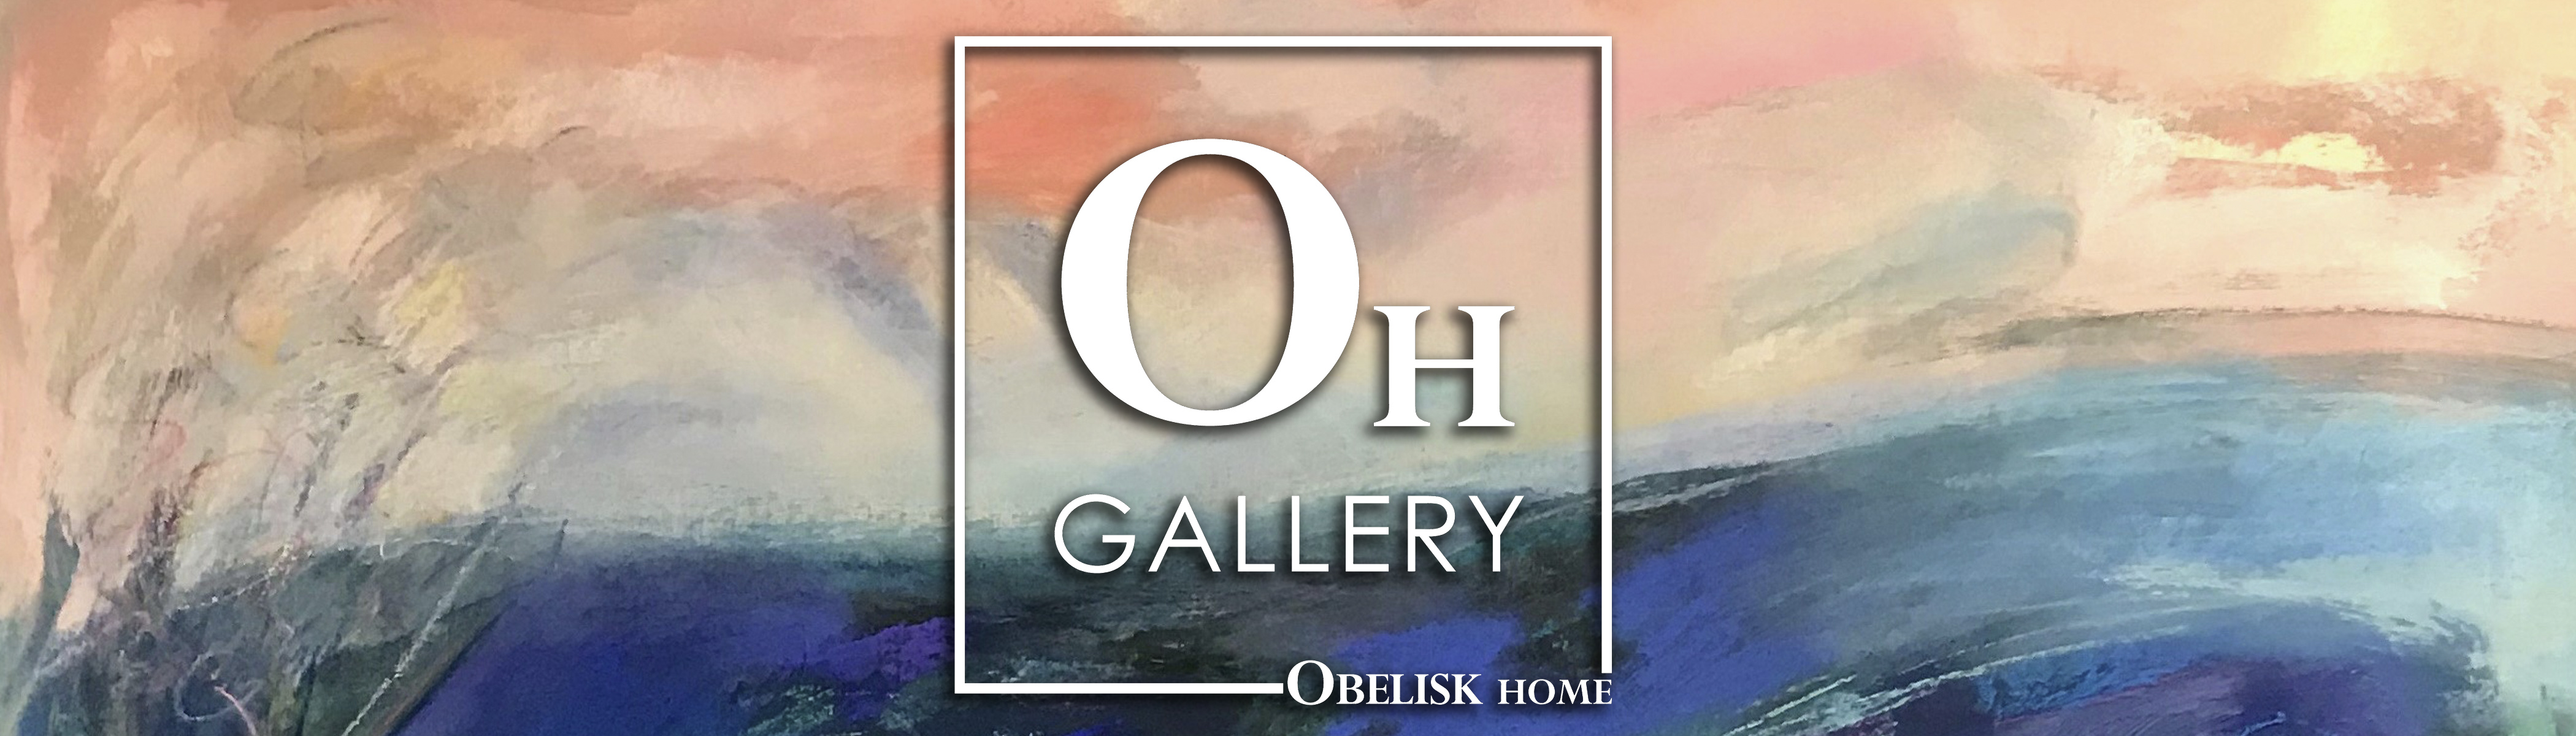 Obelisk Home Art Gallery Banner Art